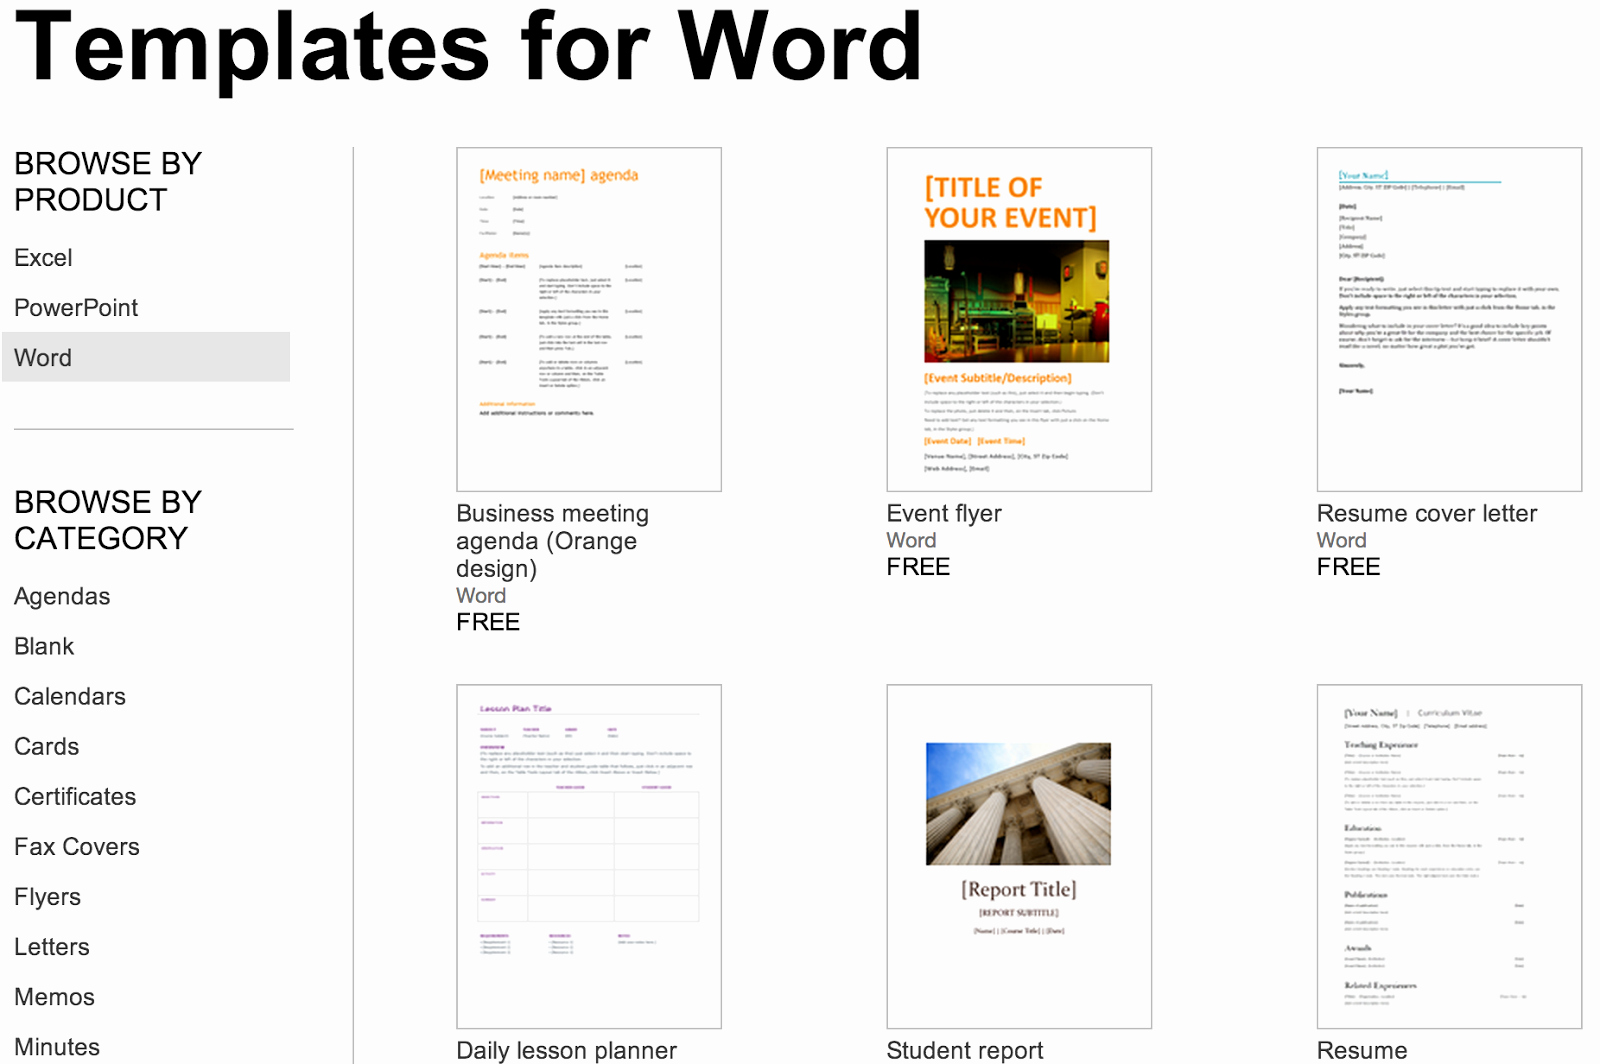 Over 250 Free Microsoft Fice Templates & Documents